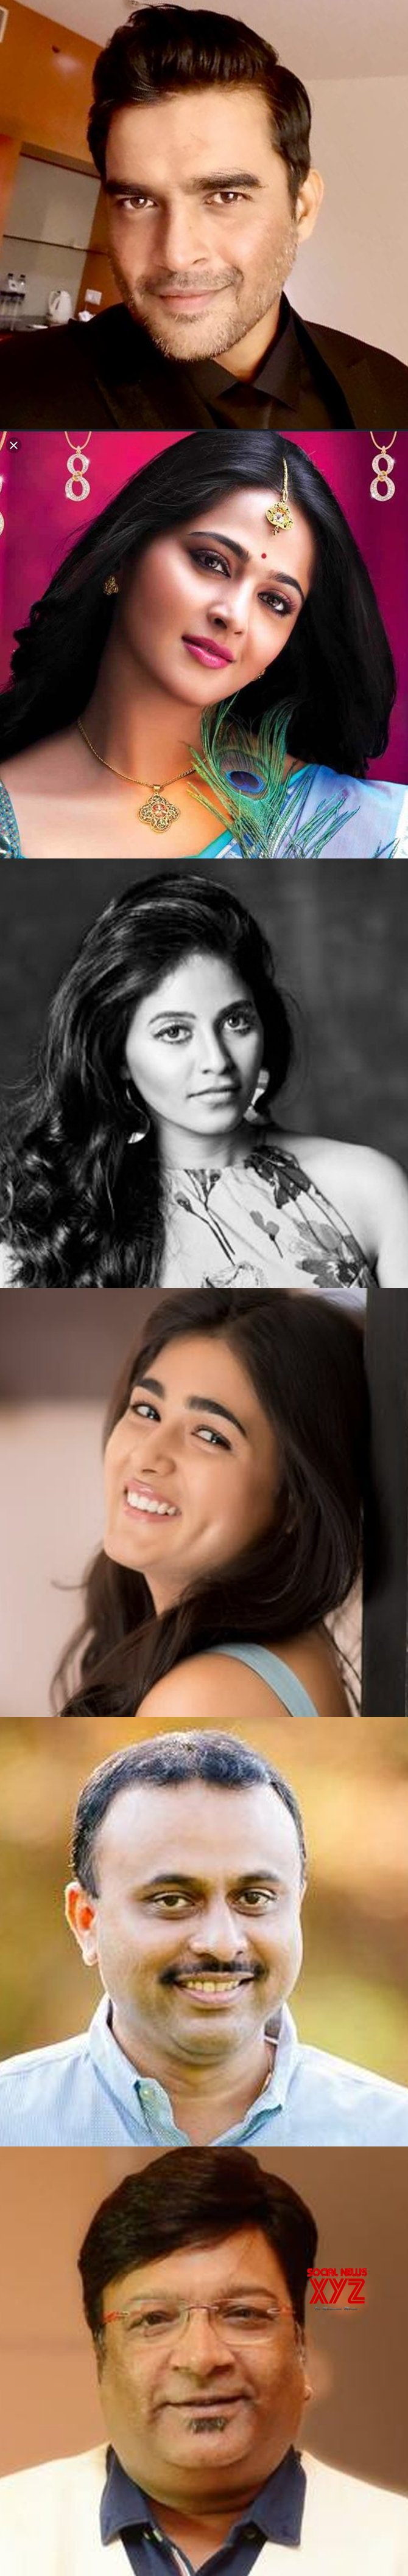 Madhavan, Anushka Shetty, Anjali, Shalini Pandey Starrer Will Be Launched In March At The USA